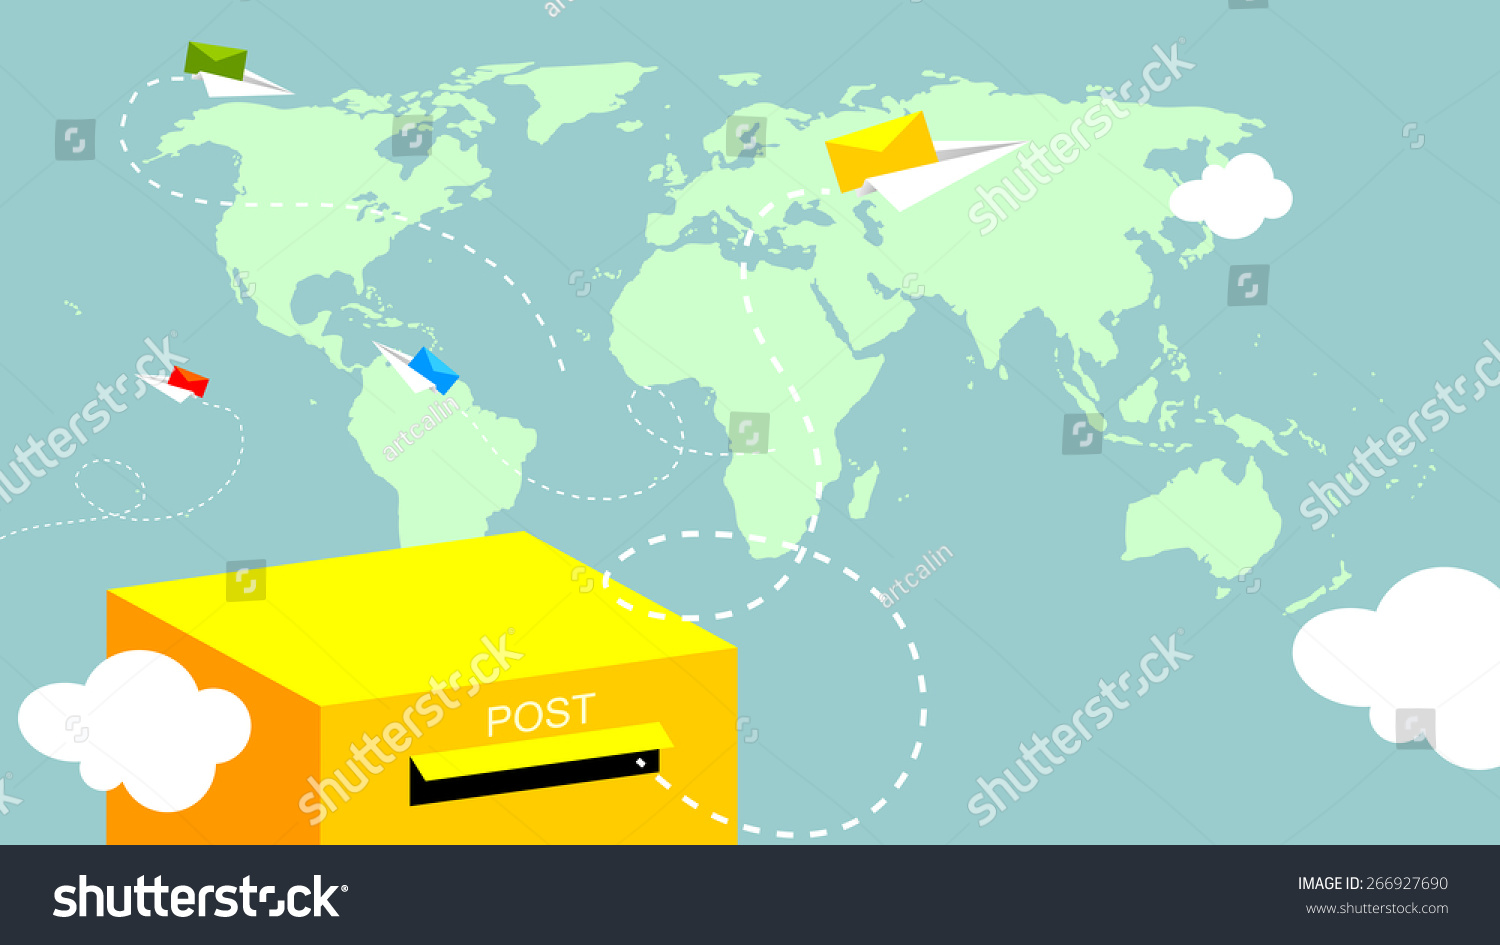 Post mailbox letters flying over world stock vector 266927690 post mailbox letters flying over world map gumiabroncs Images